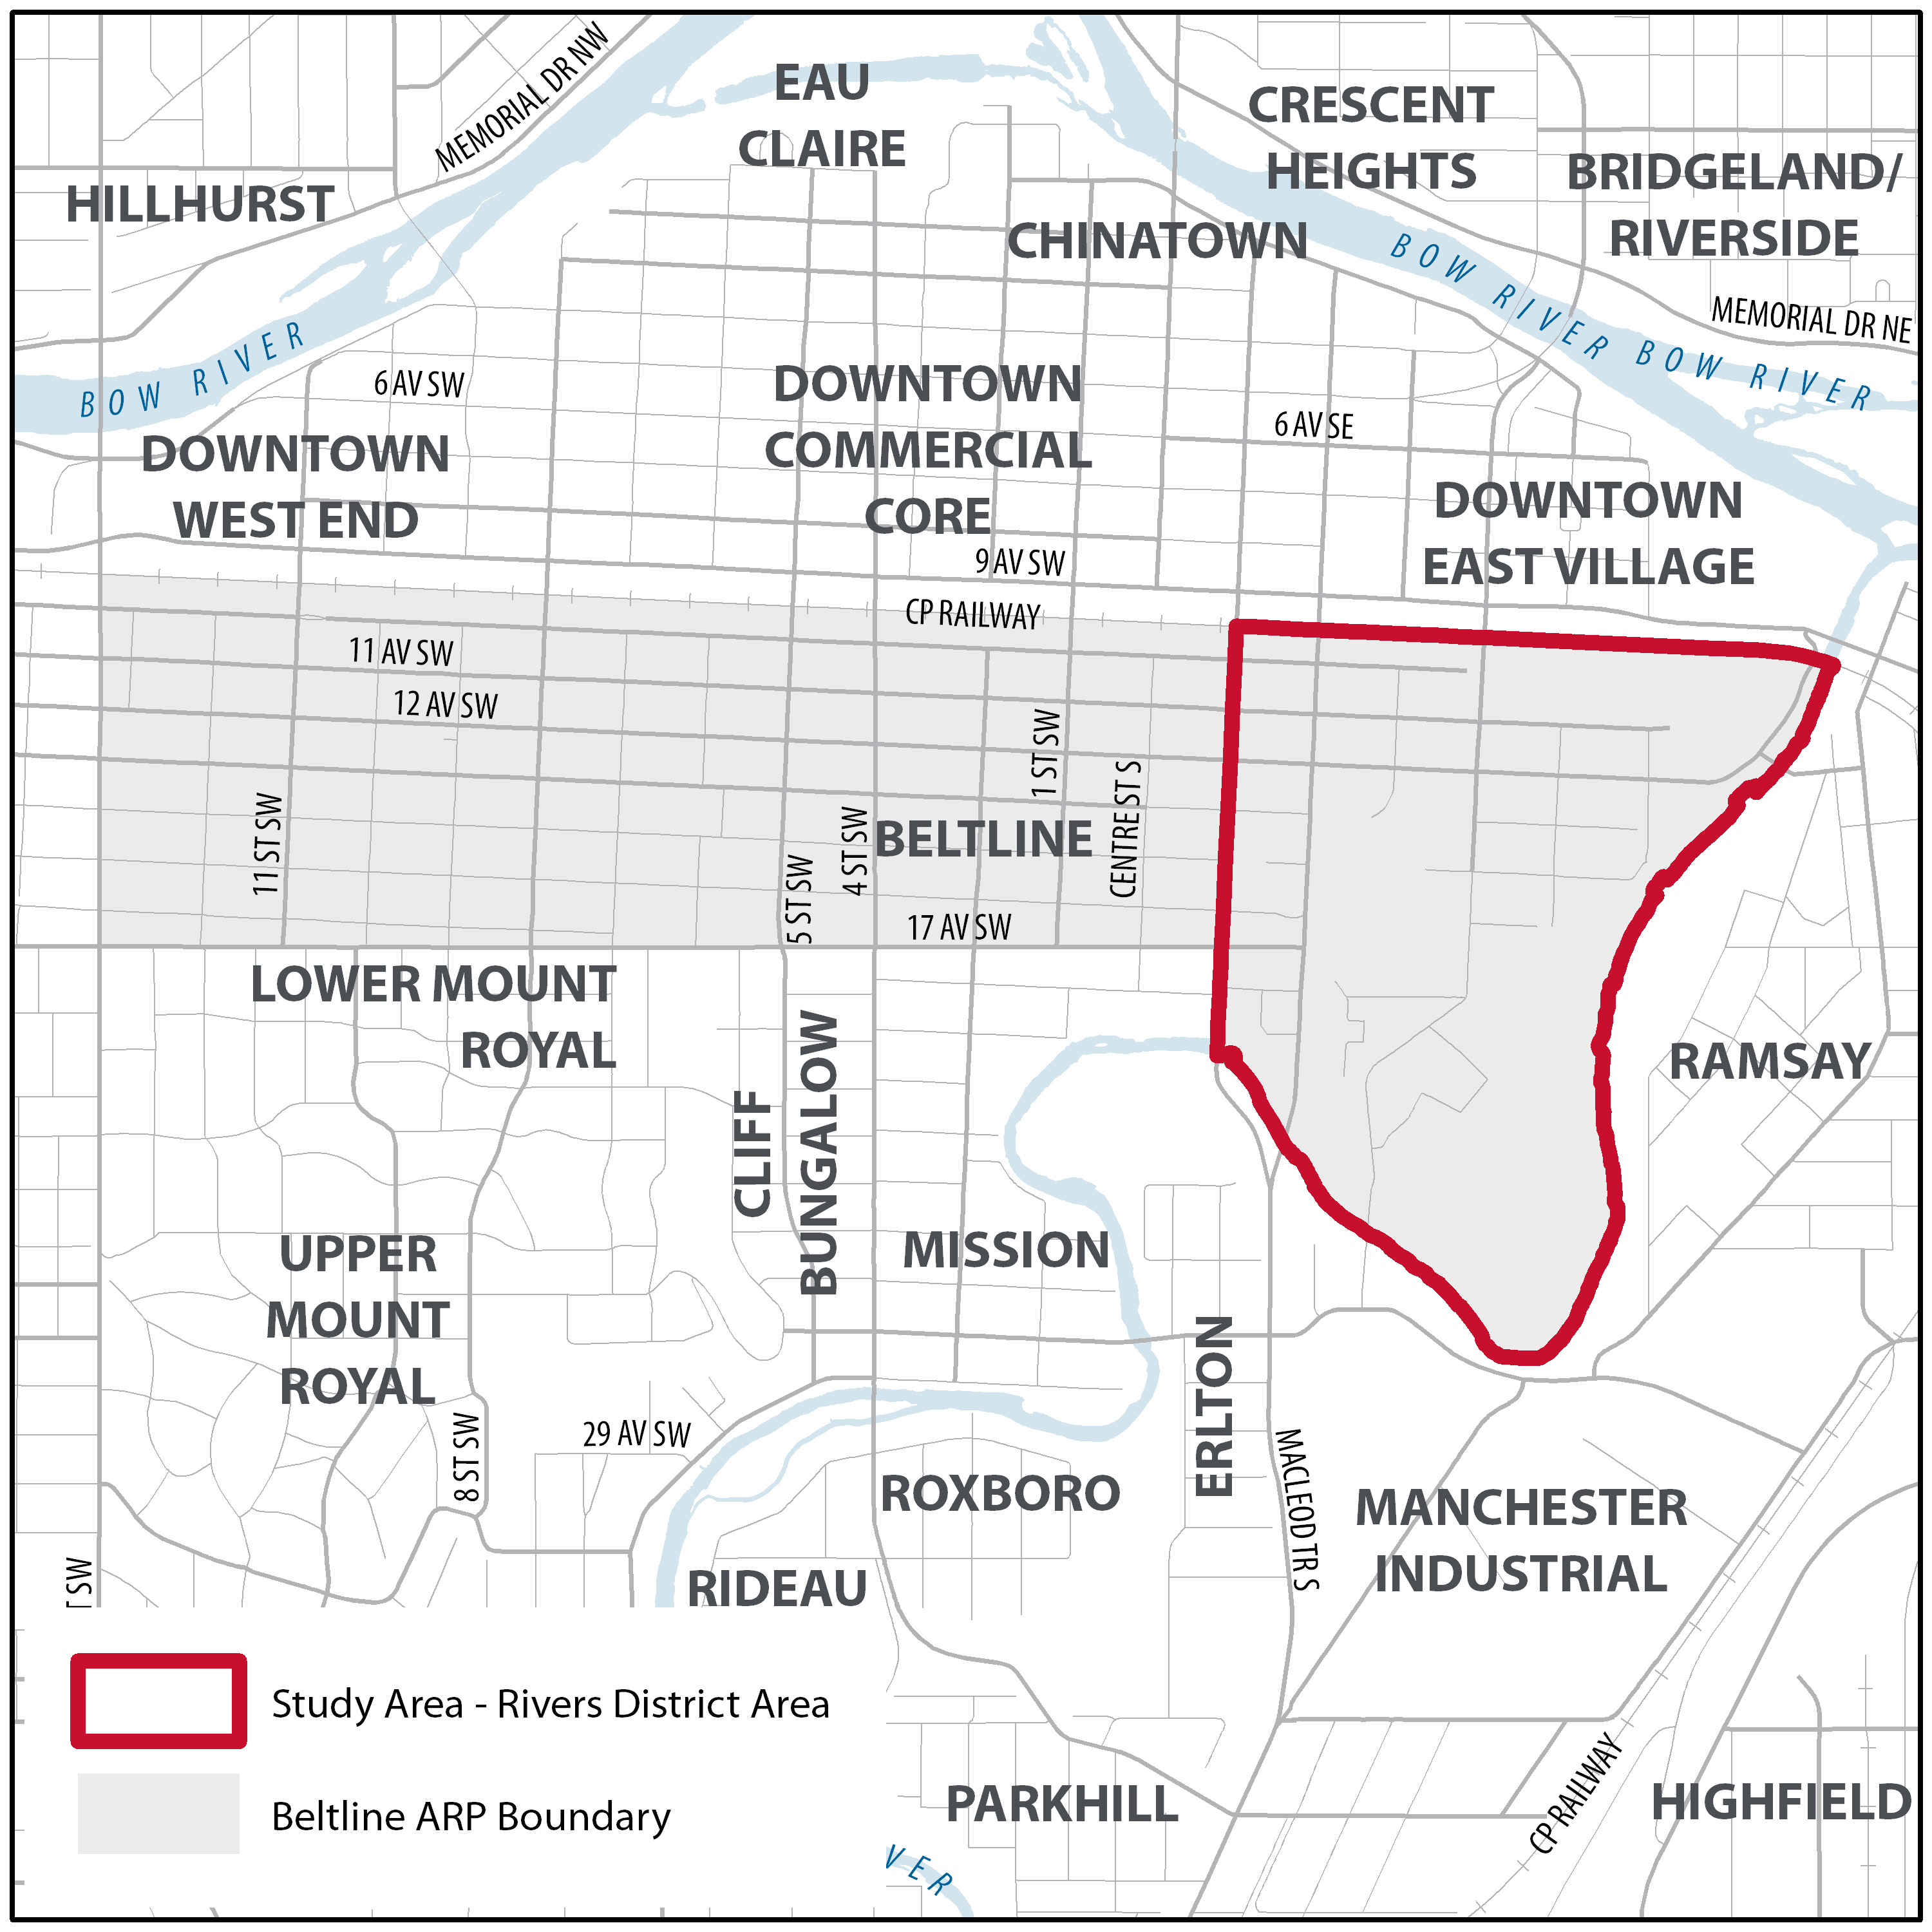 Map showing the Rivers District Study Area Boundary and the Beltline ARP Boundary.